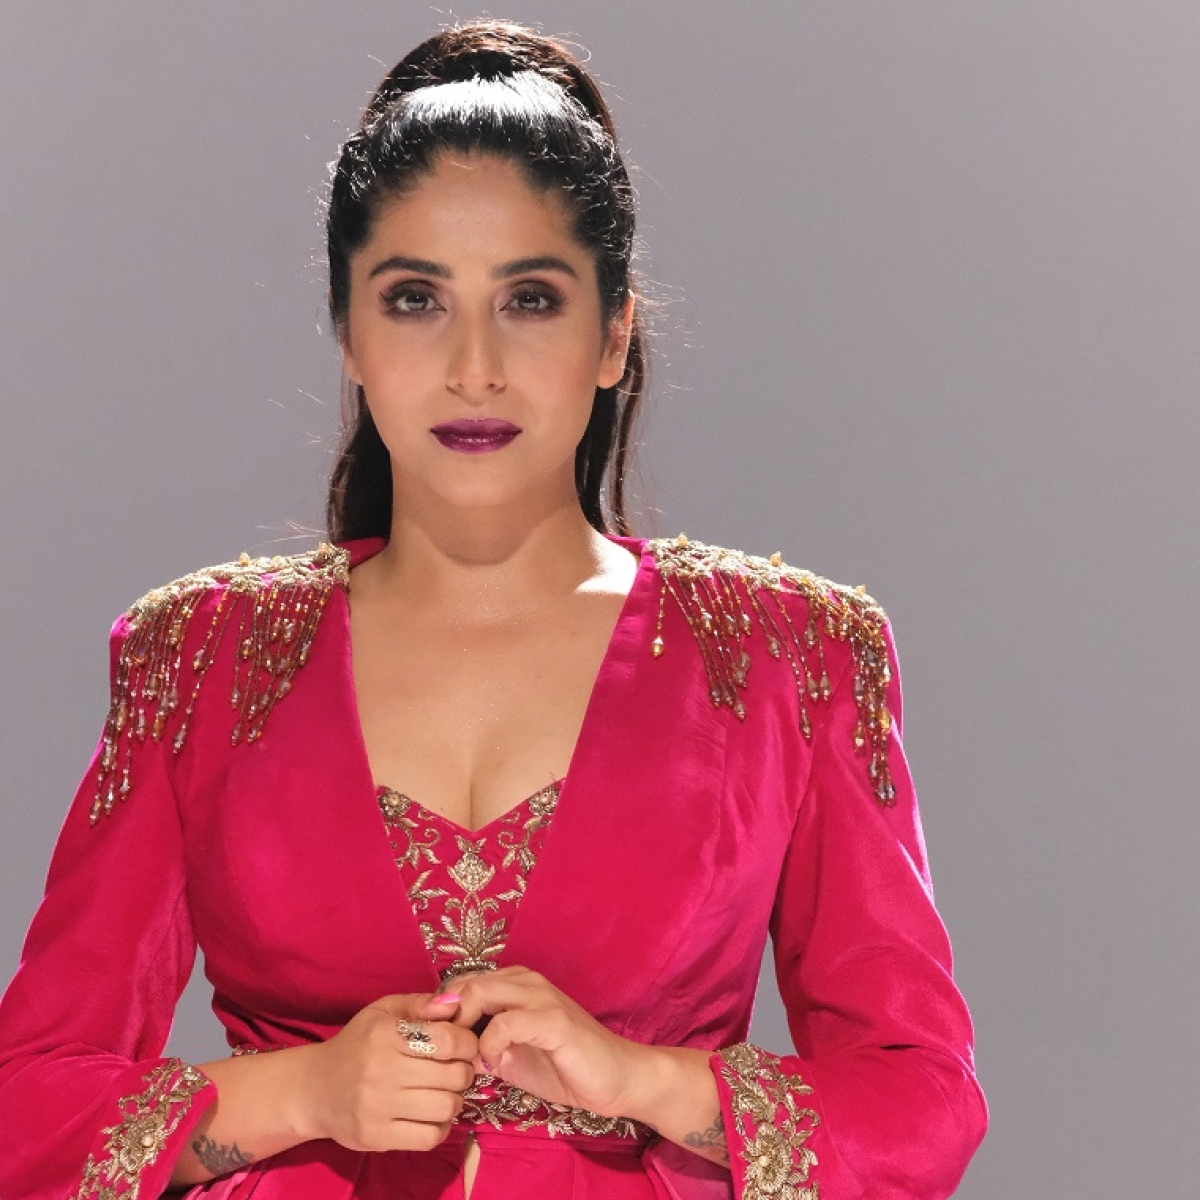 Singer Neha Bhasin opens up about her new song, Tu Ki Jaane, and journey in the music industry